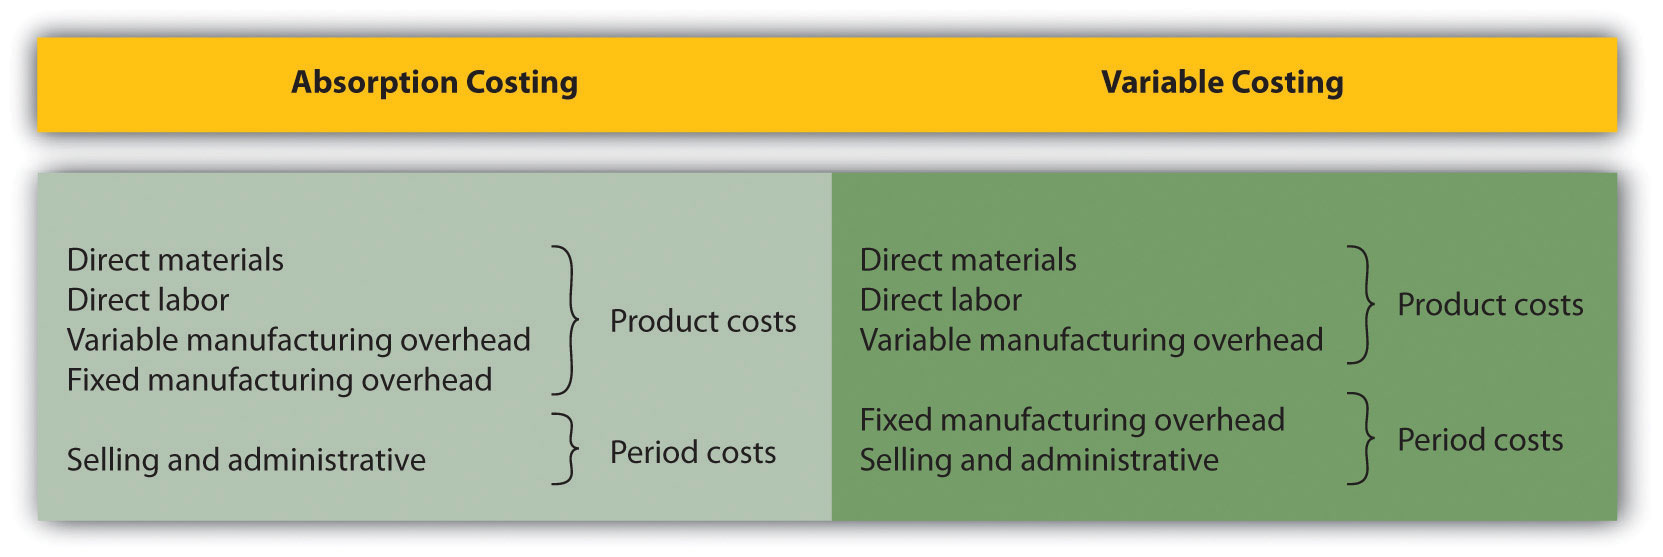 Using Variable Costing To Make Decisions Accounting For